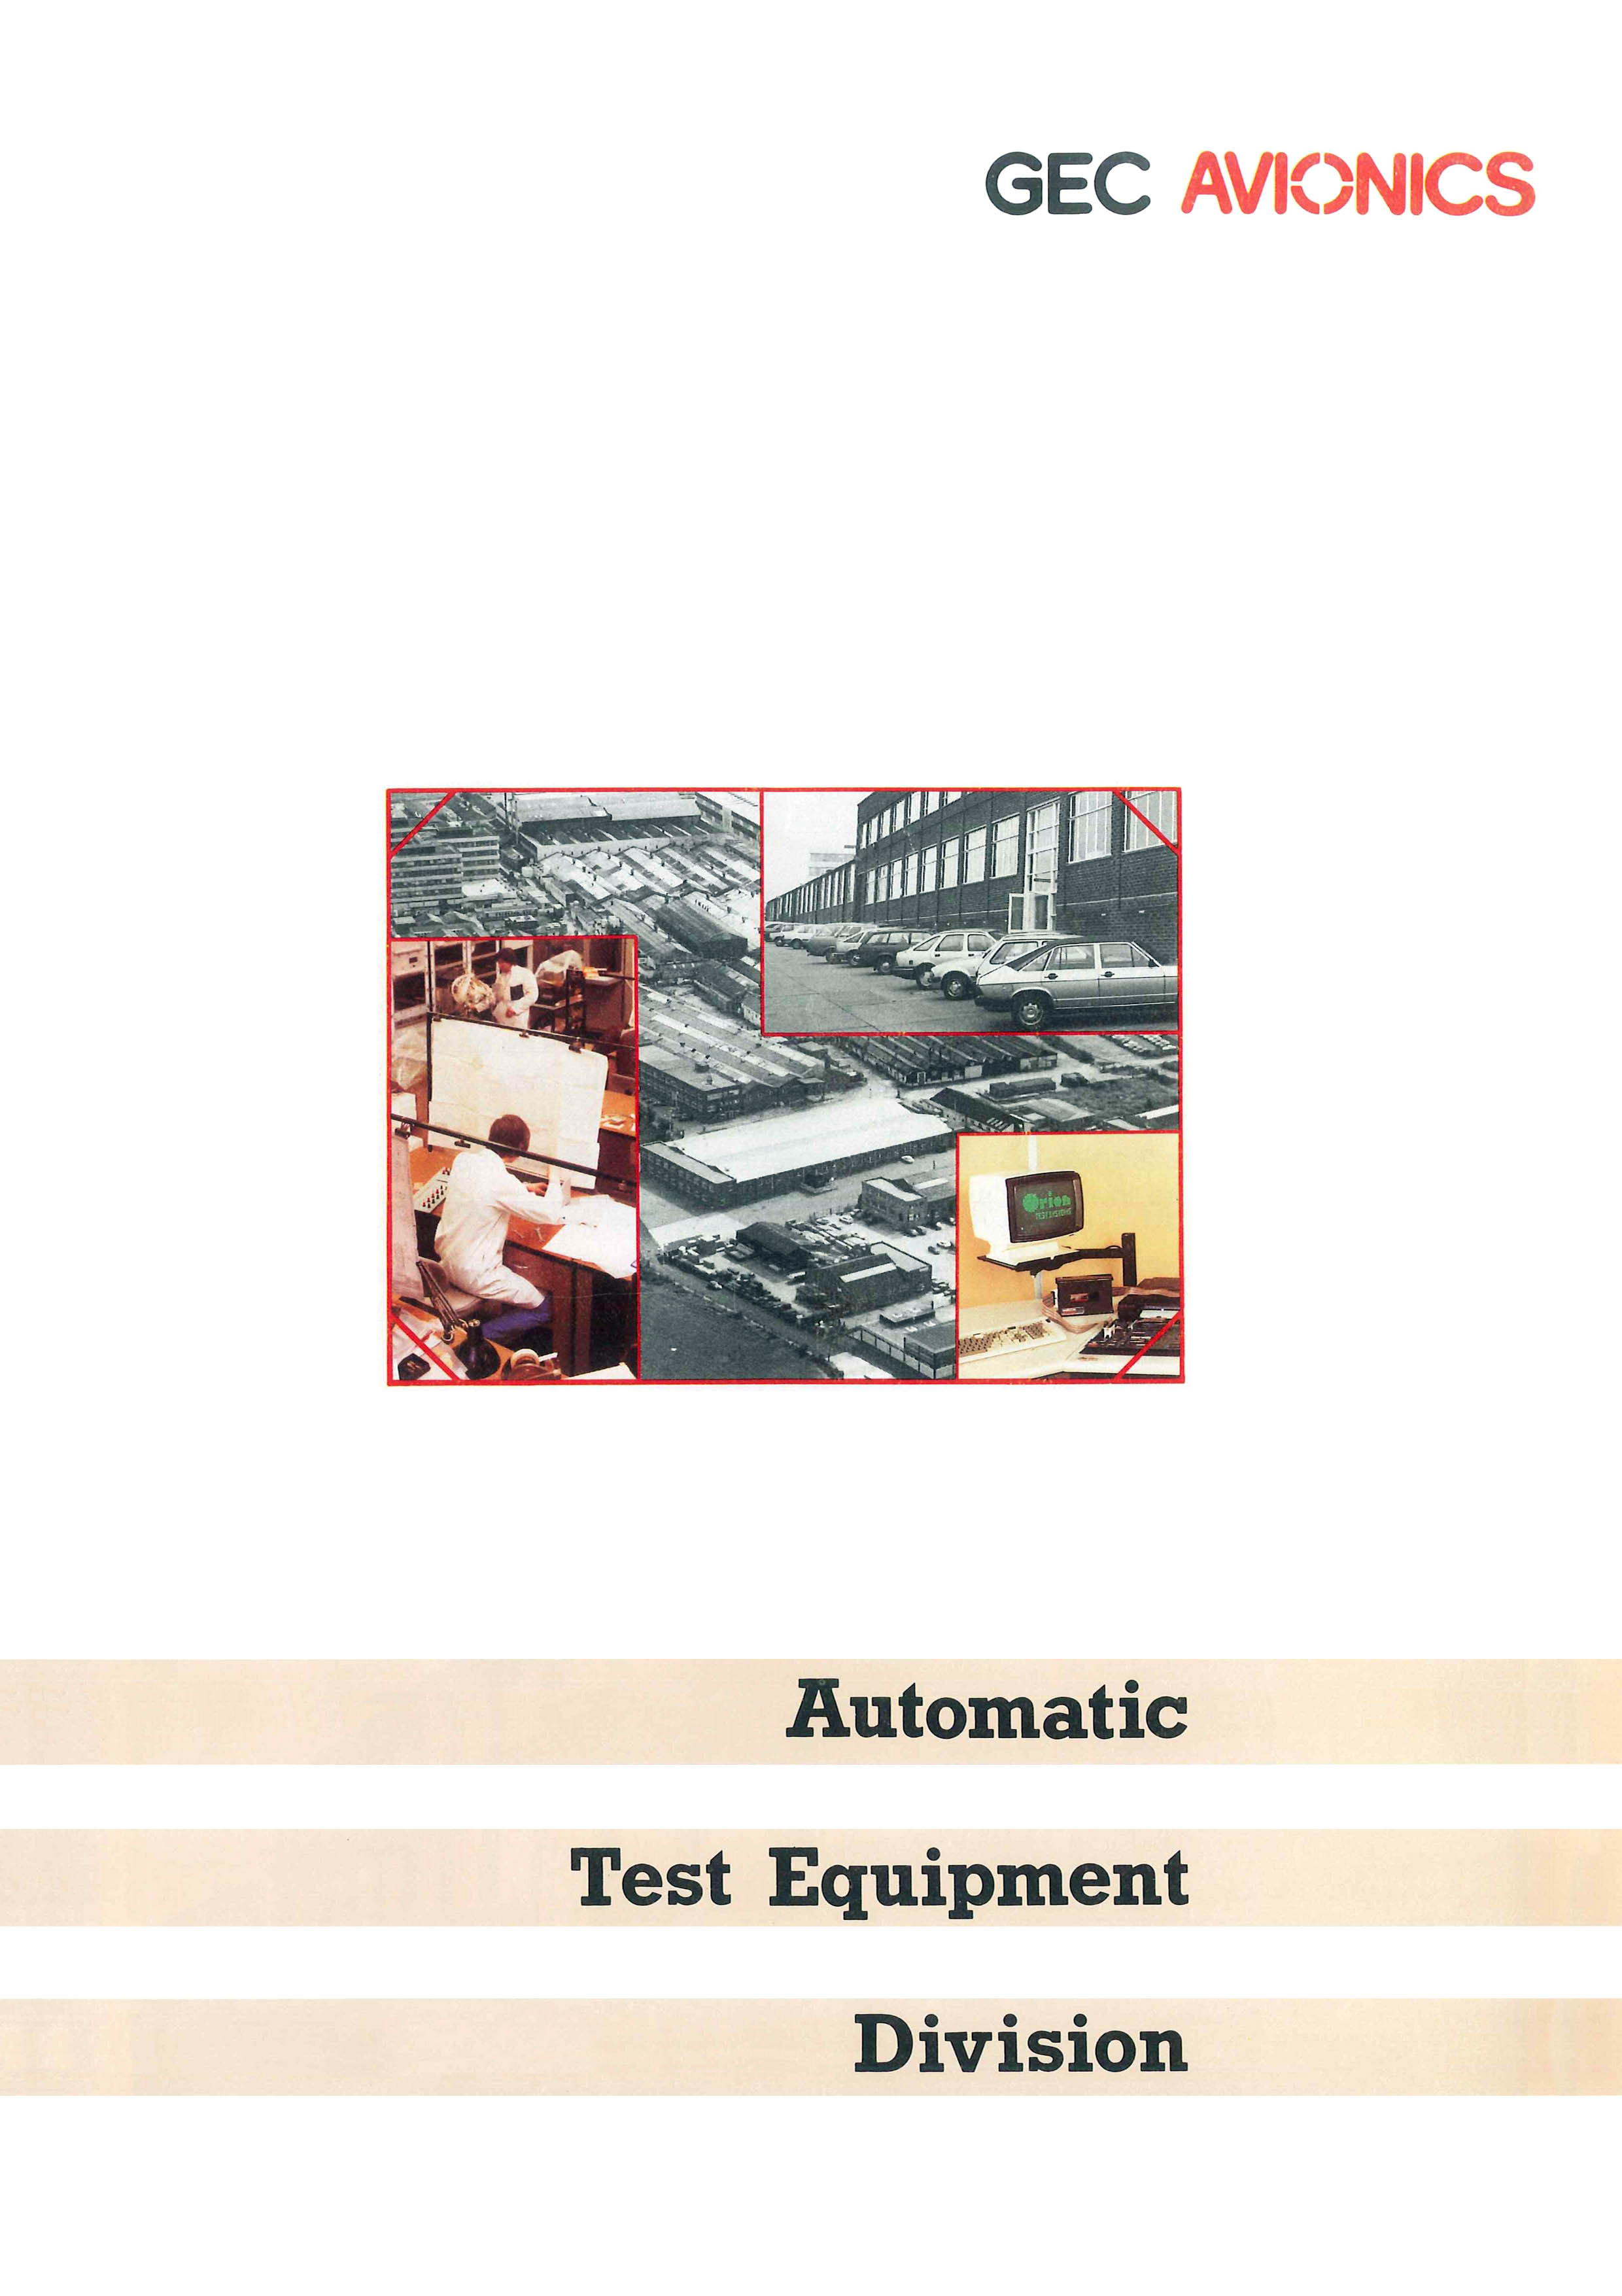 Automatic Test Equipment Division (ATED) - All Departments